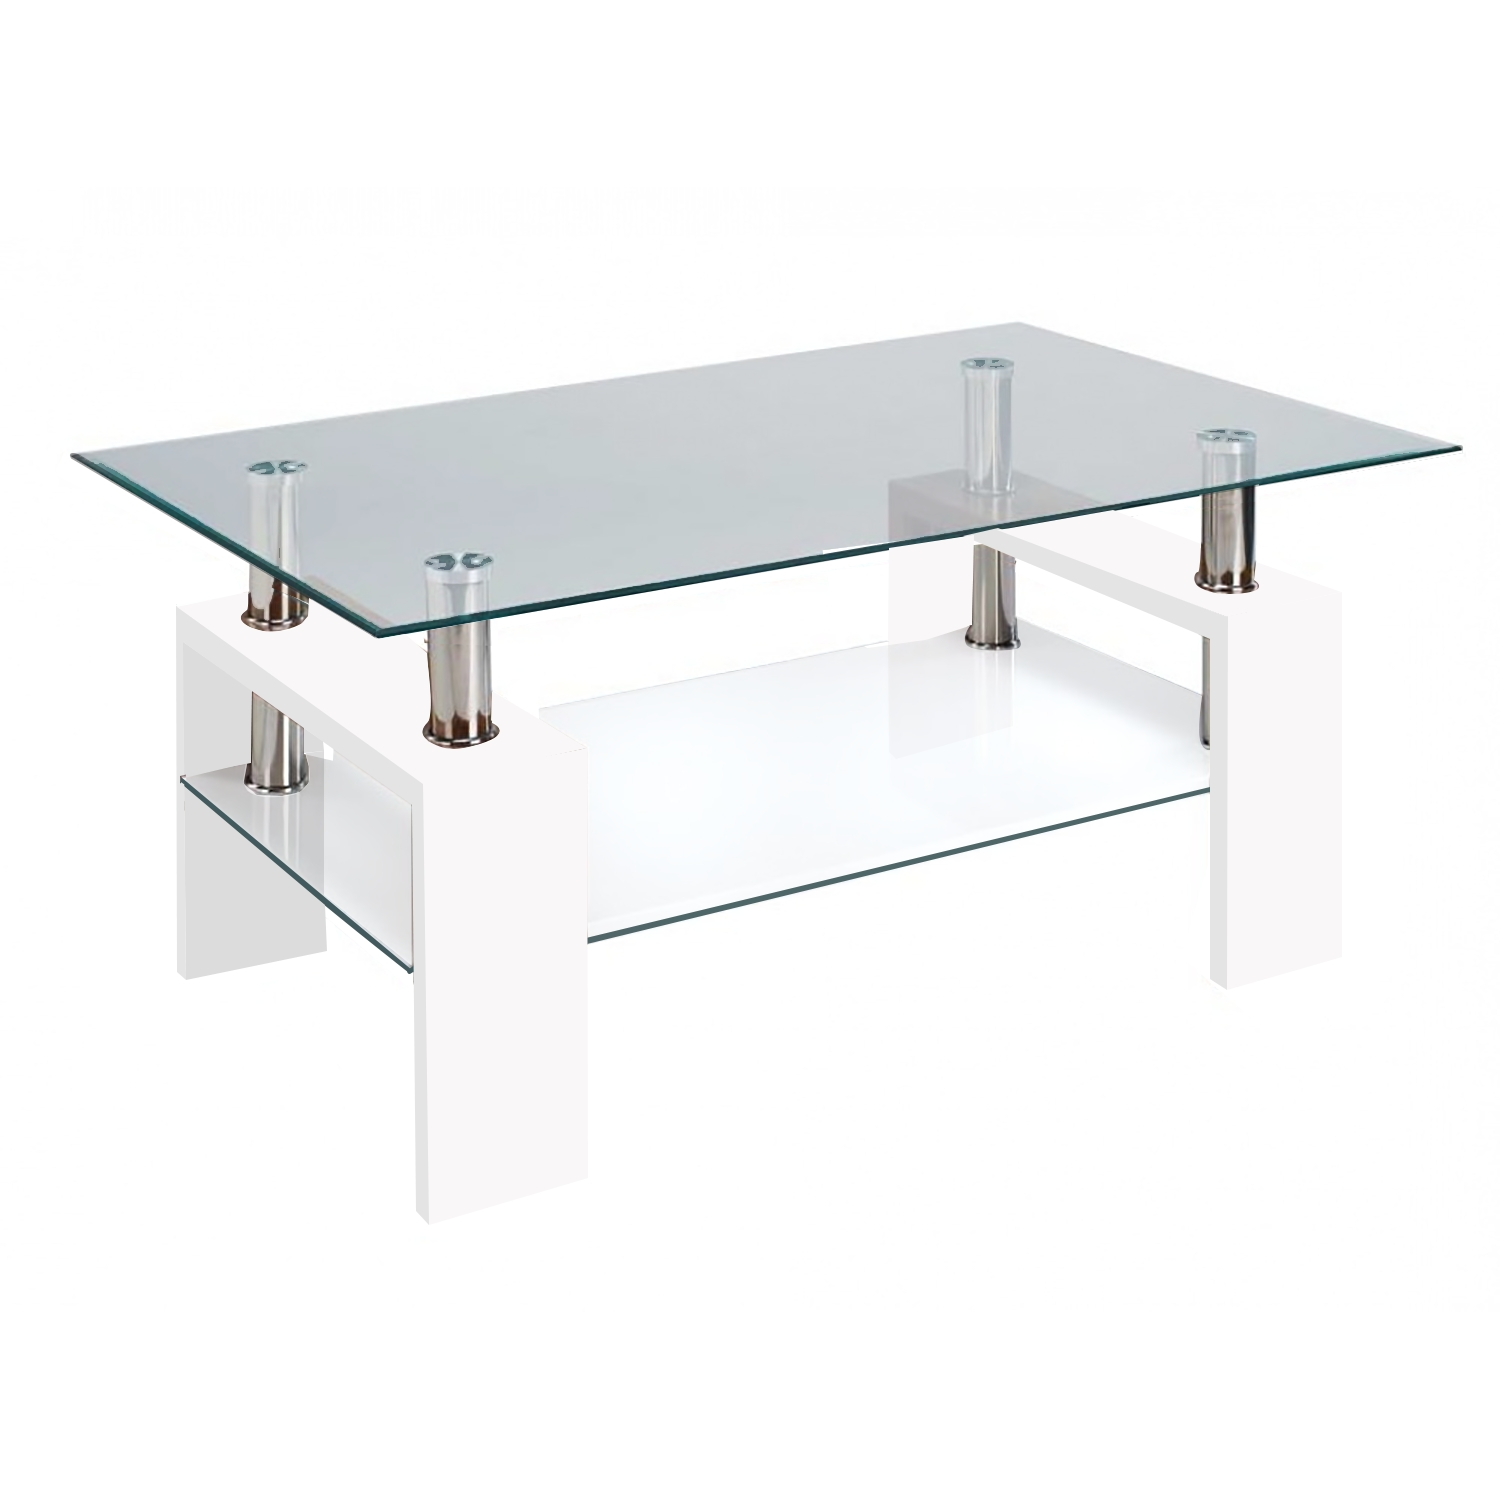 Rectangle Glass Coffee Table With Storage, Small Top Decor With Regard To Most Current Rectangle Glass Coffee Table (View 6 of 20)